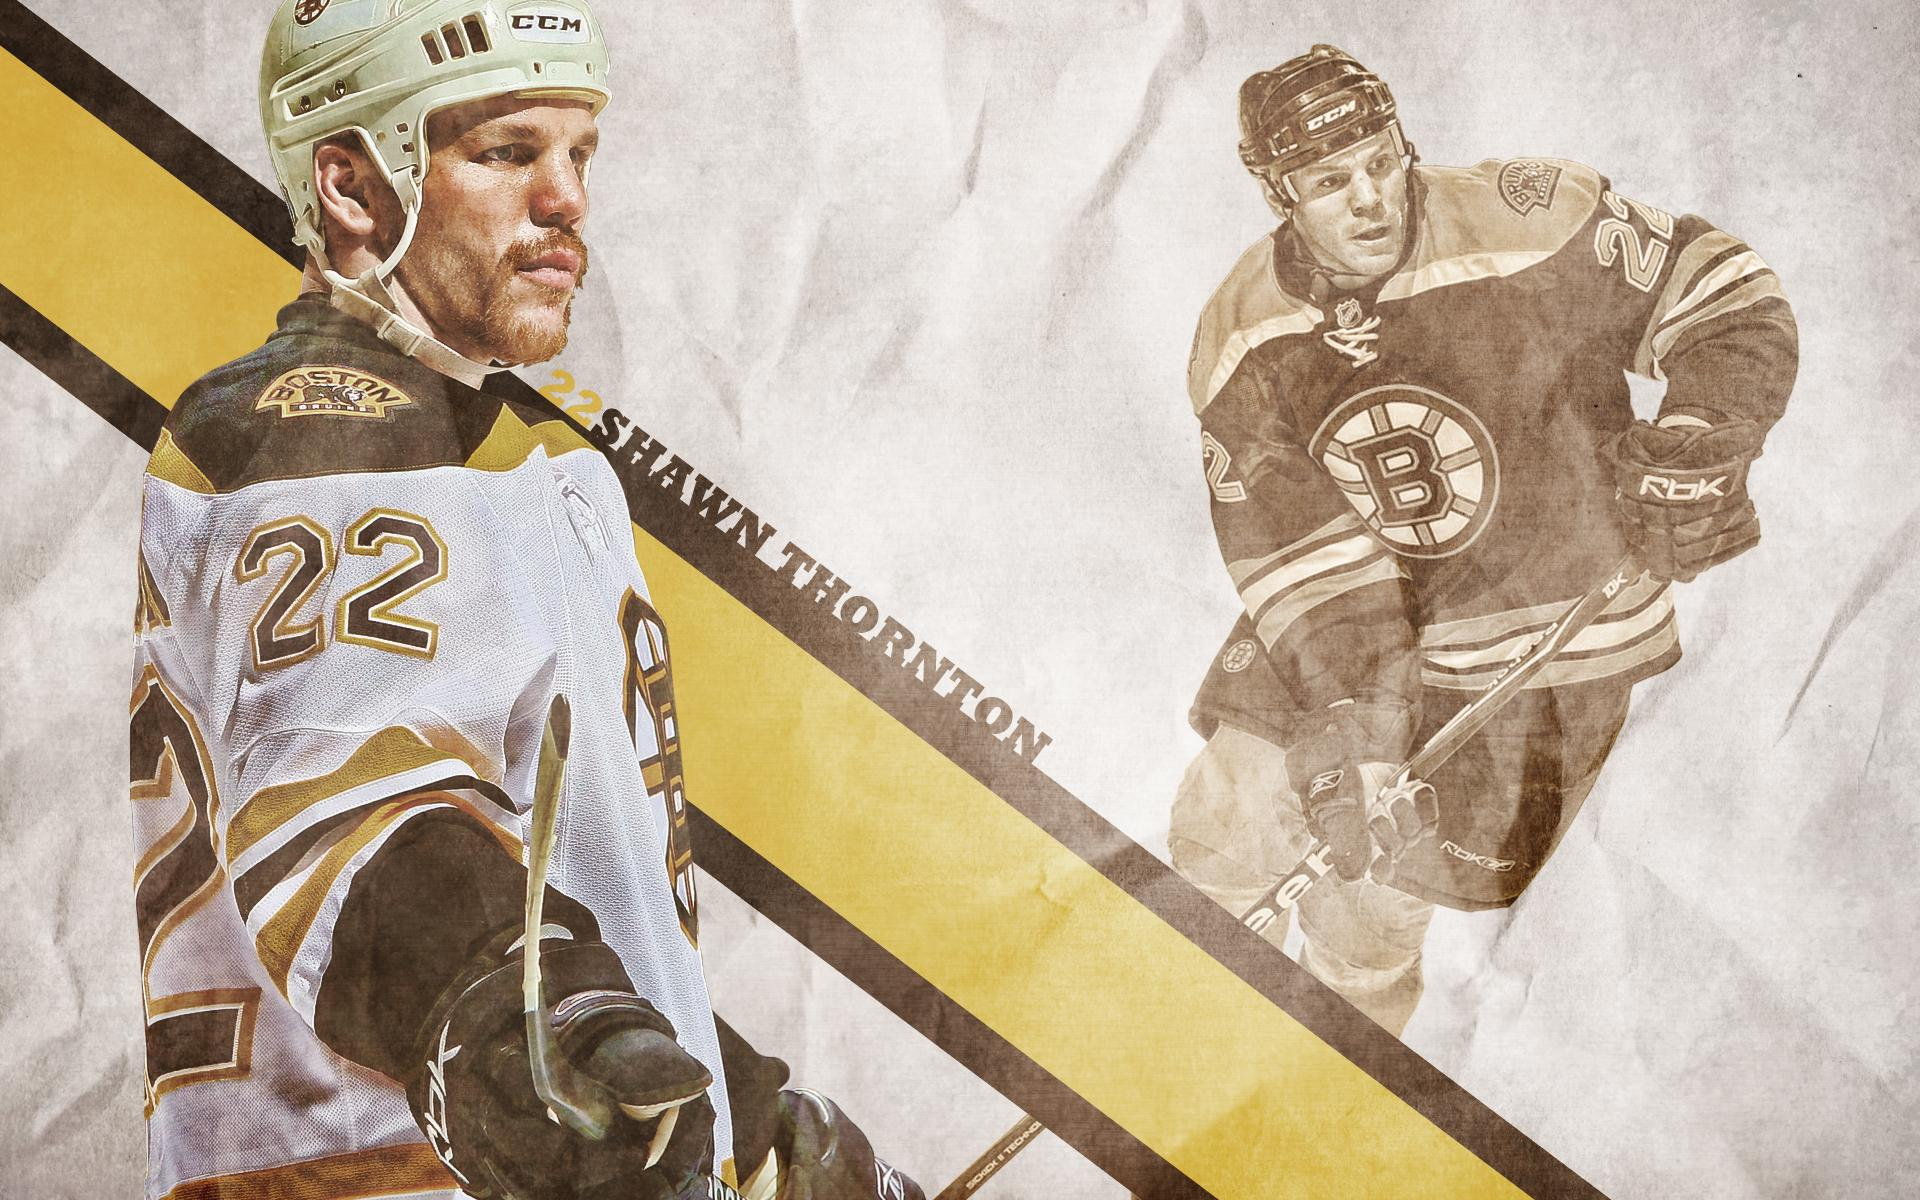 Collection of Bruins Hd Wallpaper on HDWallpapers 1920x1200